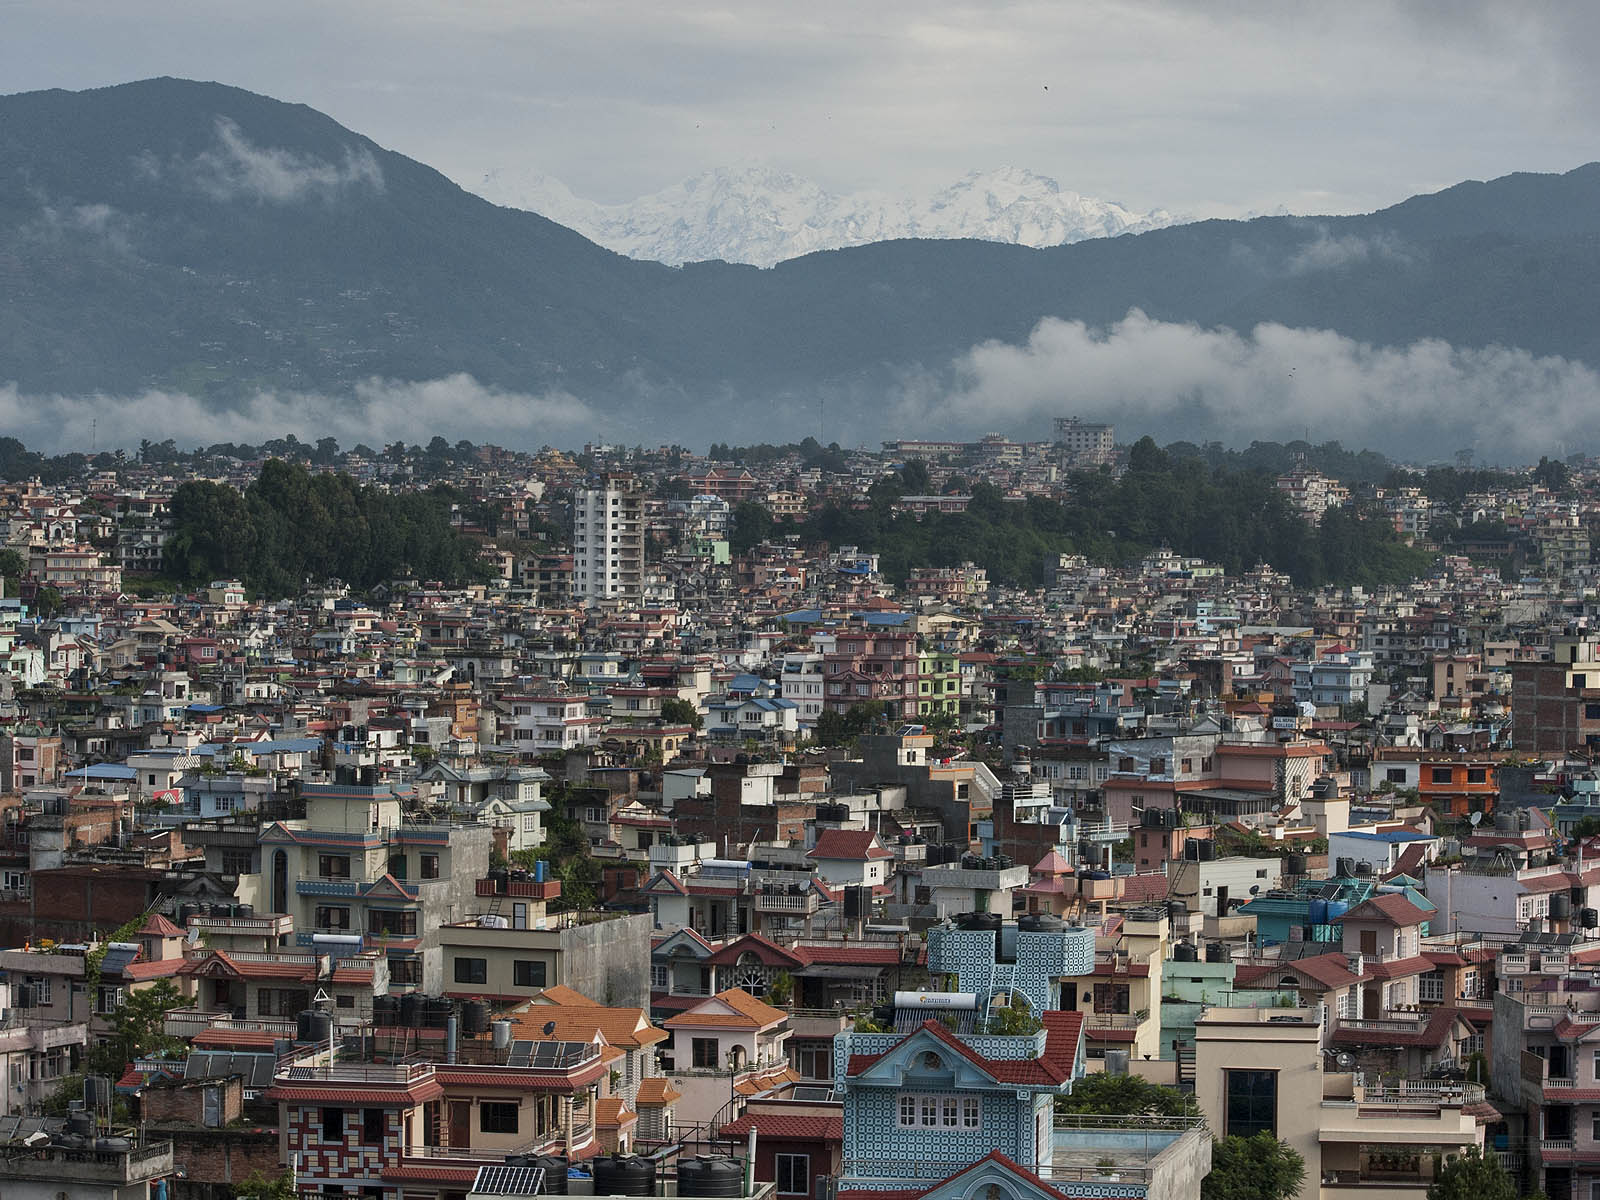 As if by divine intervention, on my last morning we could see the Himalayas towering over the Kathmandu Valley – the first time in 3 months. A sight that only seeing with your eyes can do justice! What an amazing time!!!!